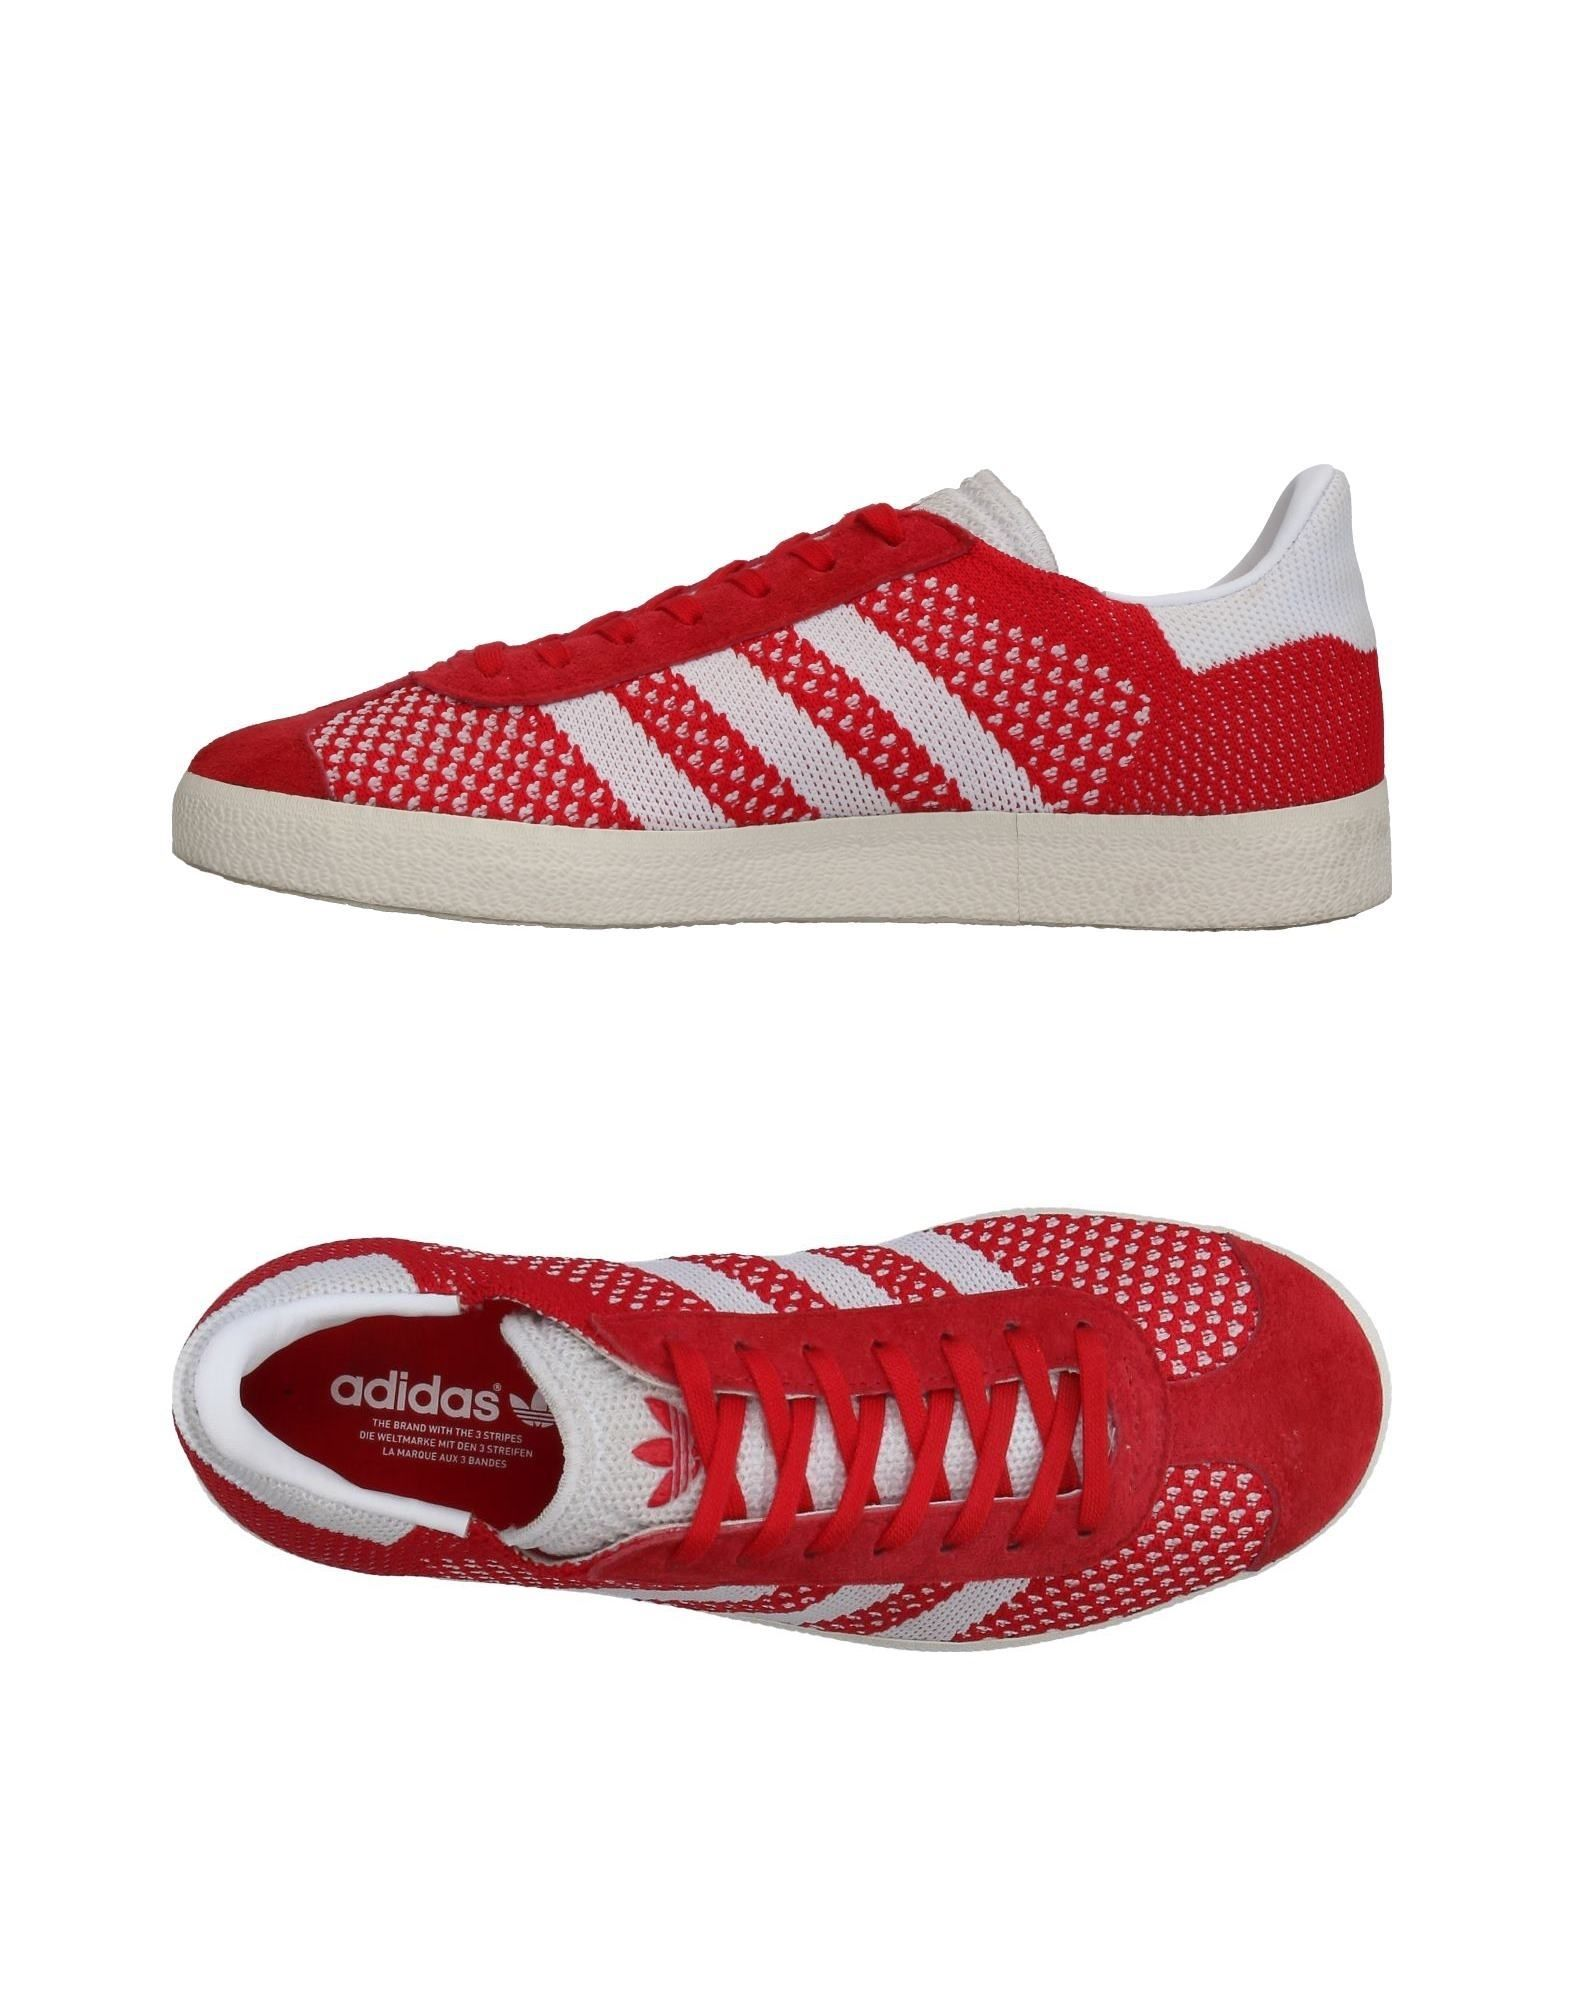 Baskets Adidas Originals Homme - Baskets Adidas Originals  Rouge Mode pas cher et belle